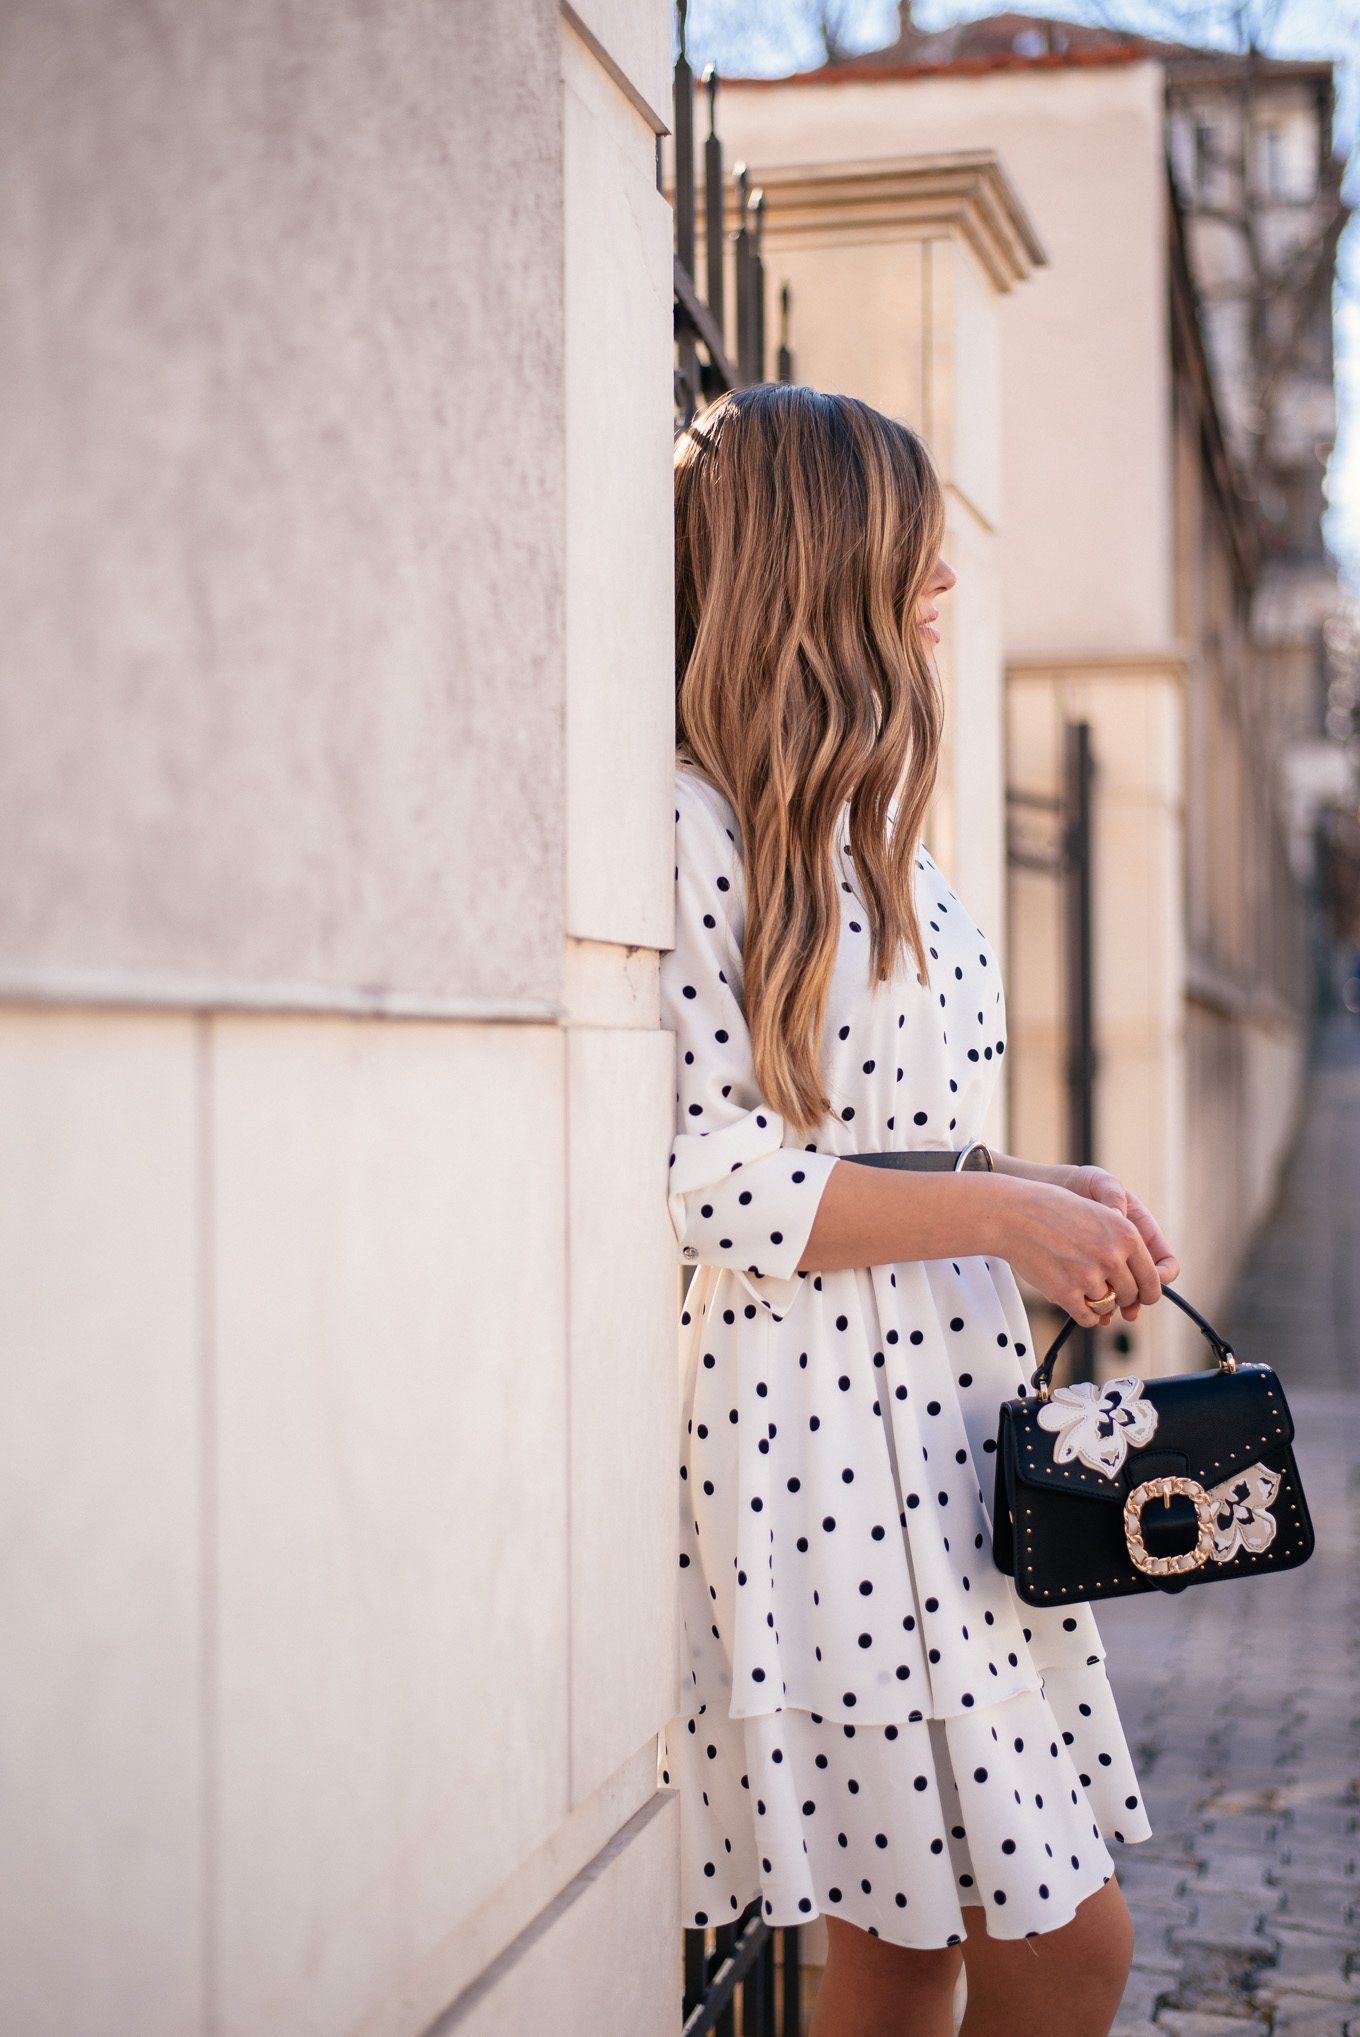 styling polka dot dress